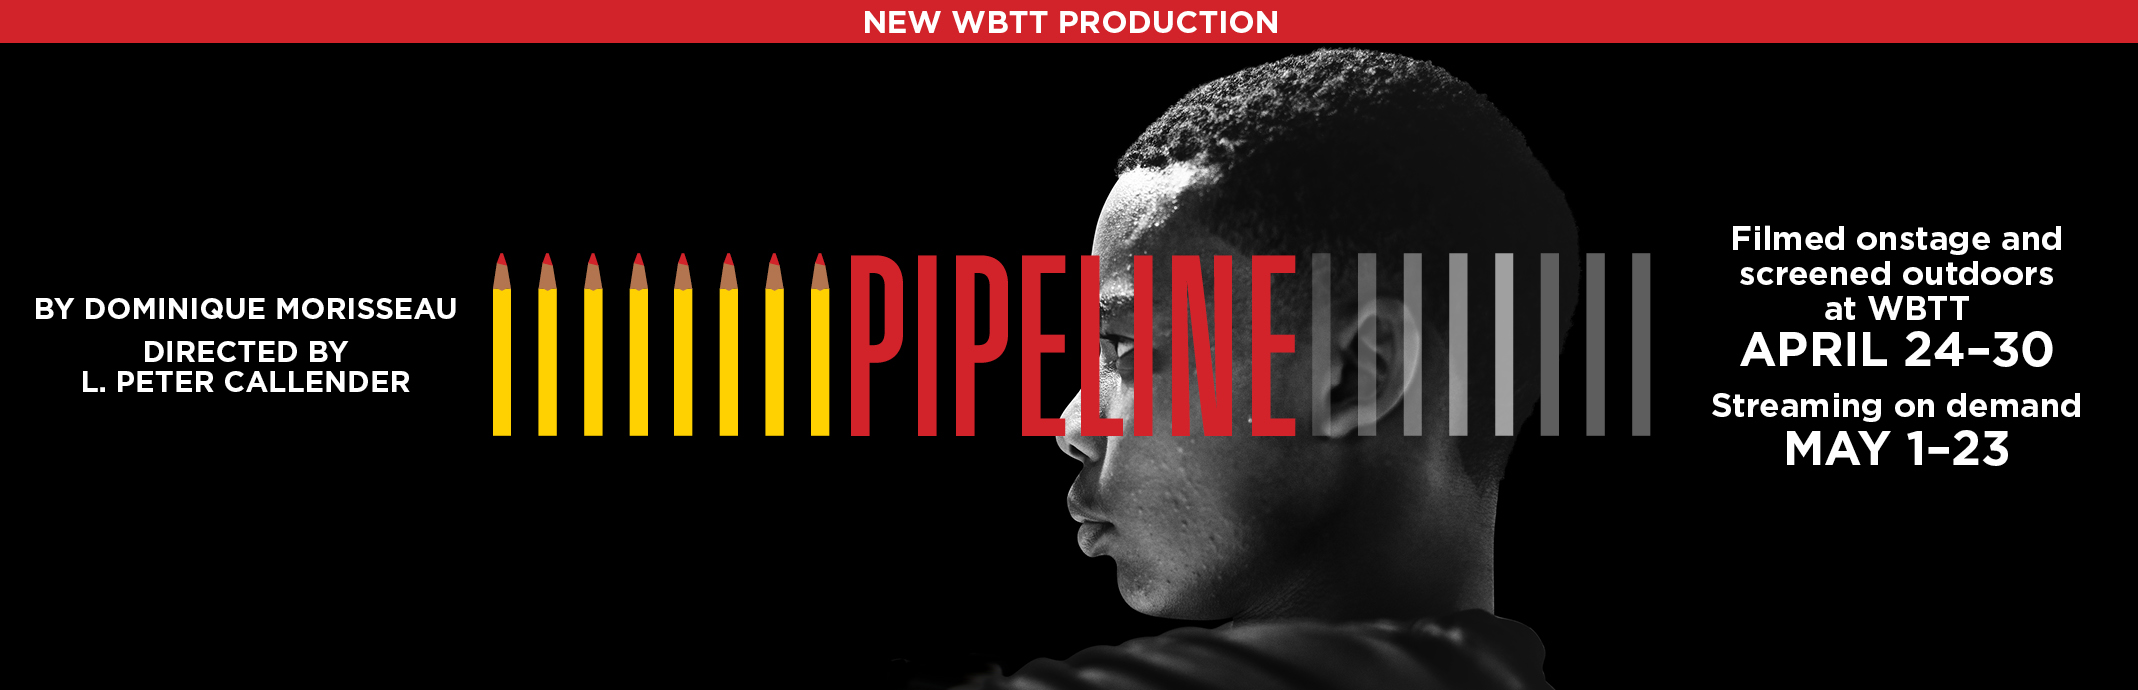 Pipeline: Filmed onstage and screened outdoors at WBTT; April 24-30, Streaming May 1-23